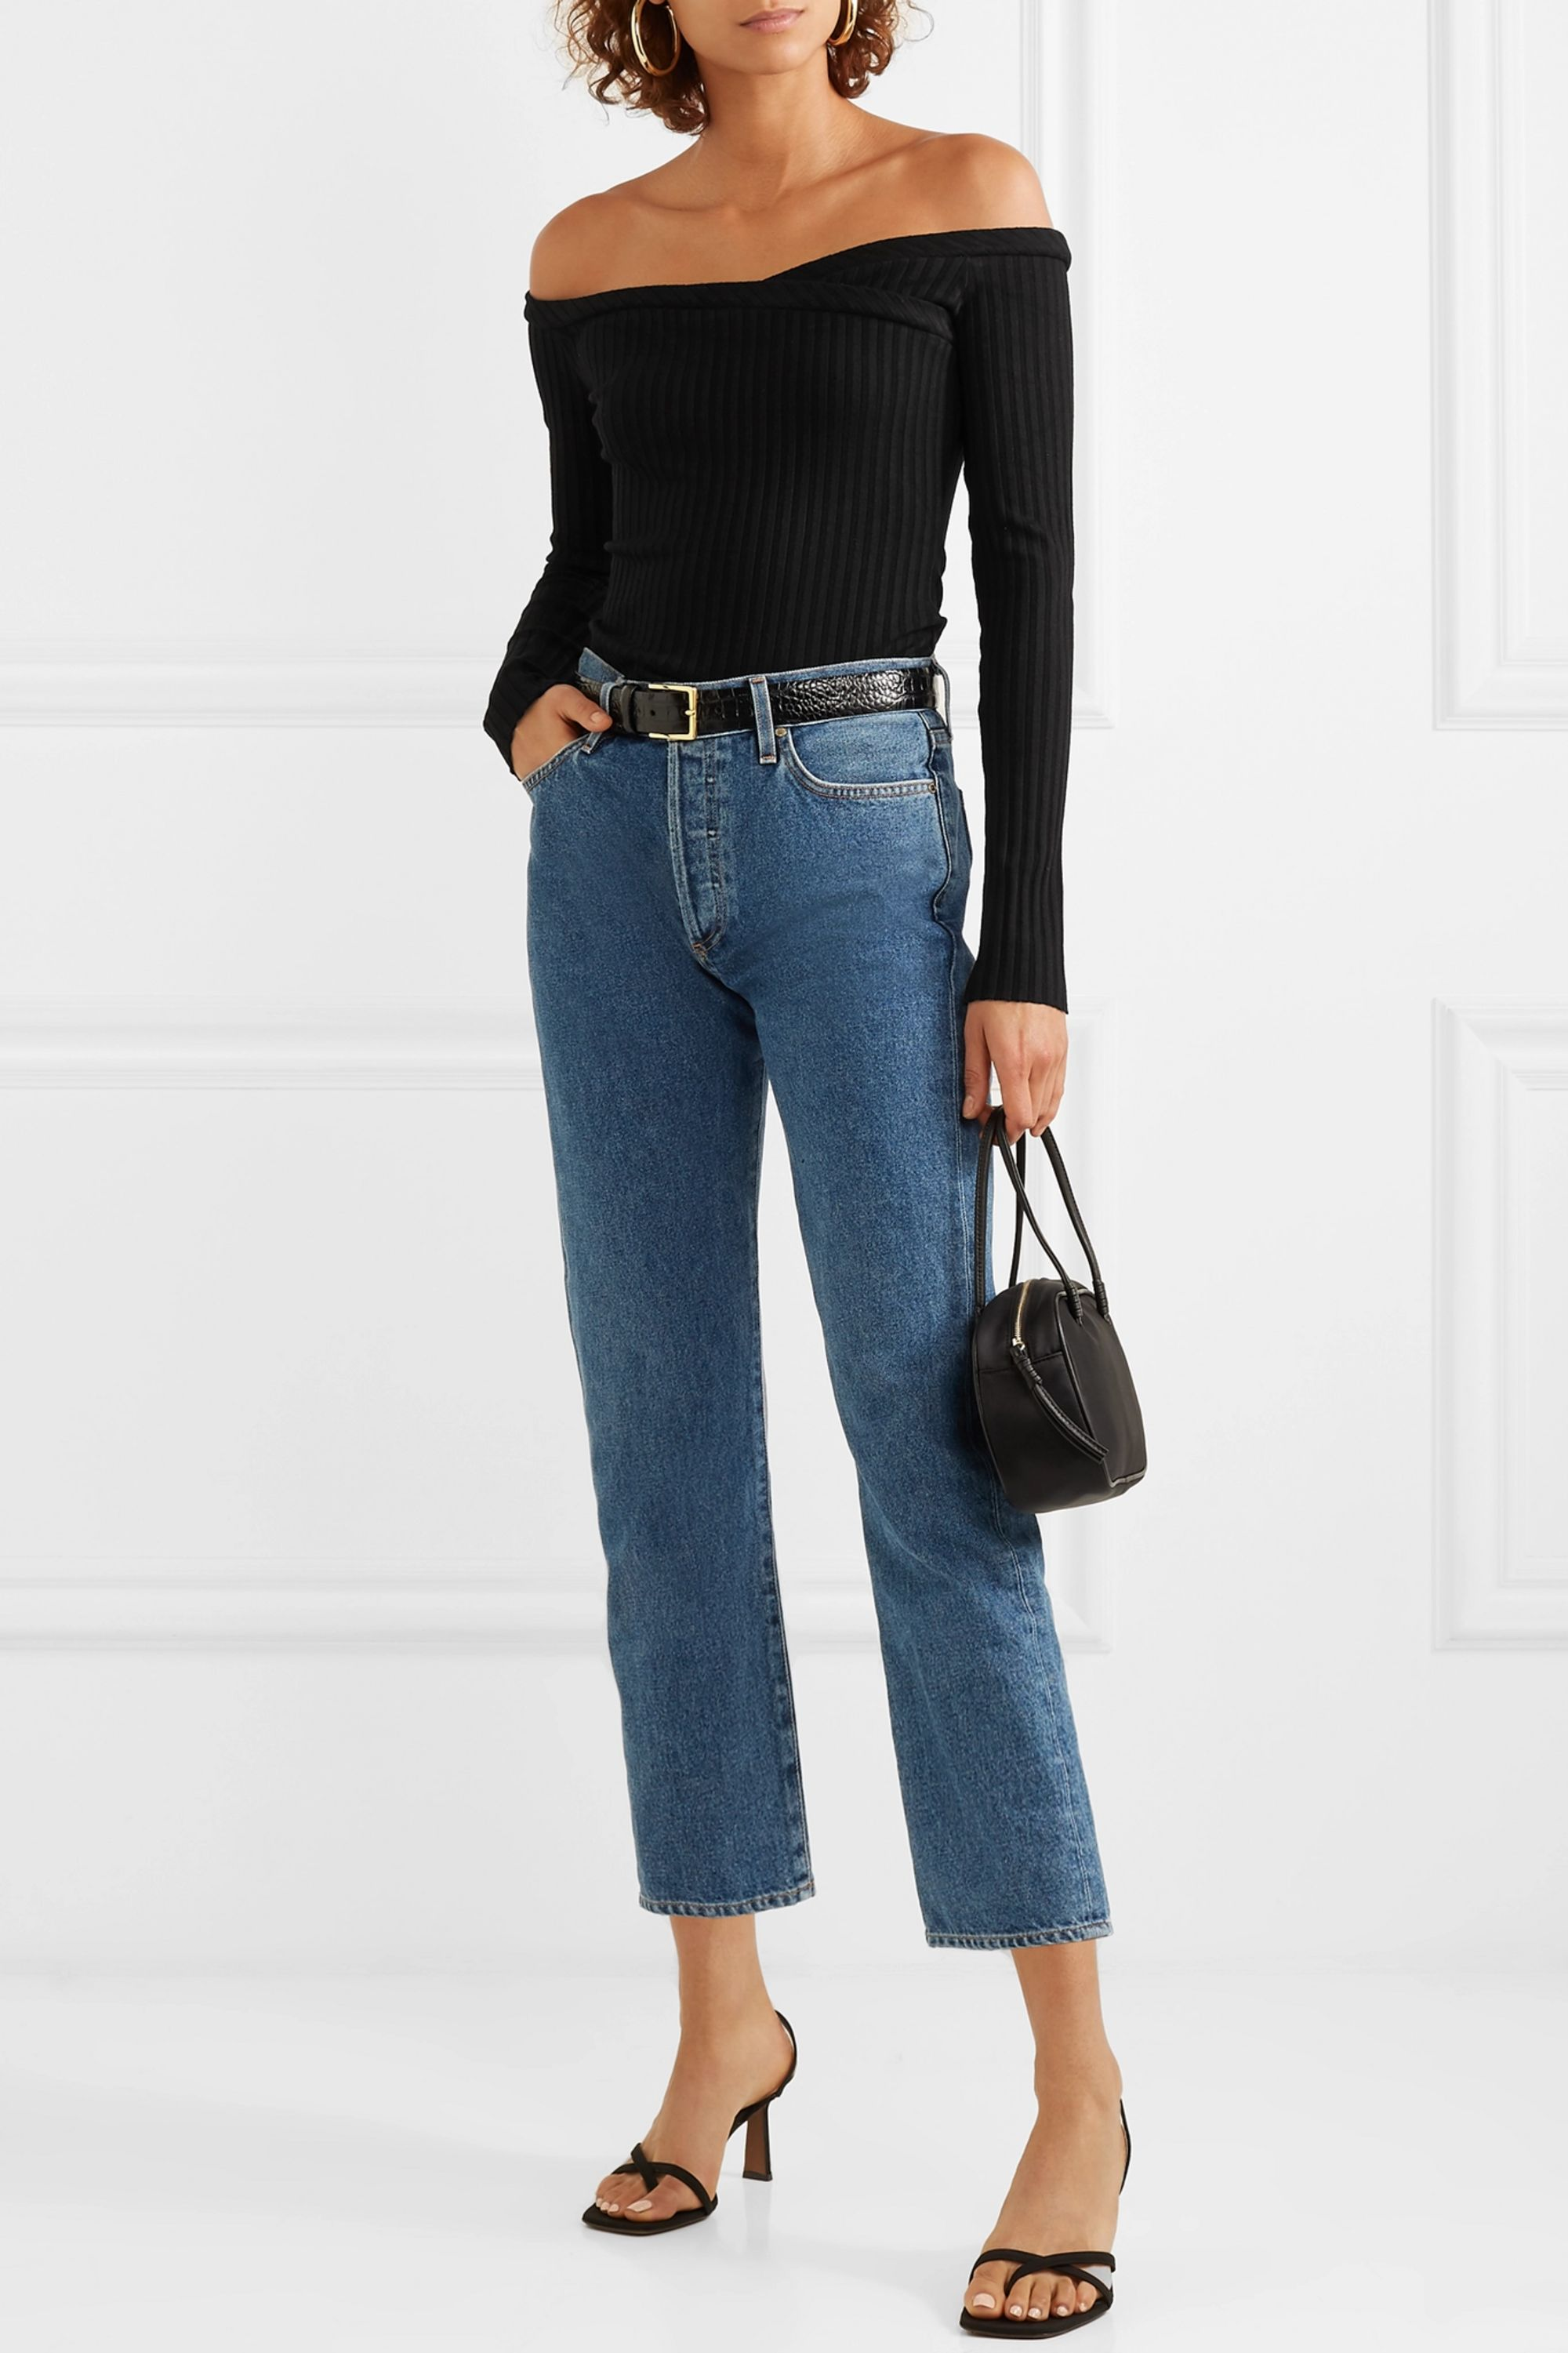 The Range Off-the-shoulder ribbed stretch-jersey top